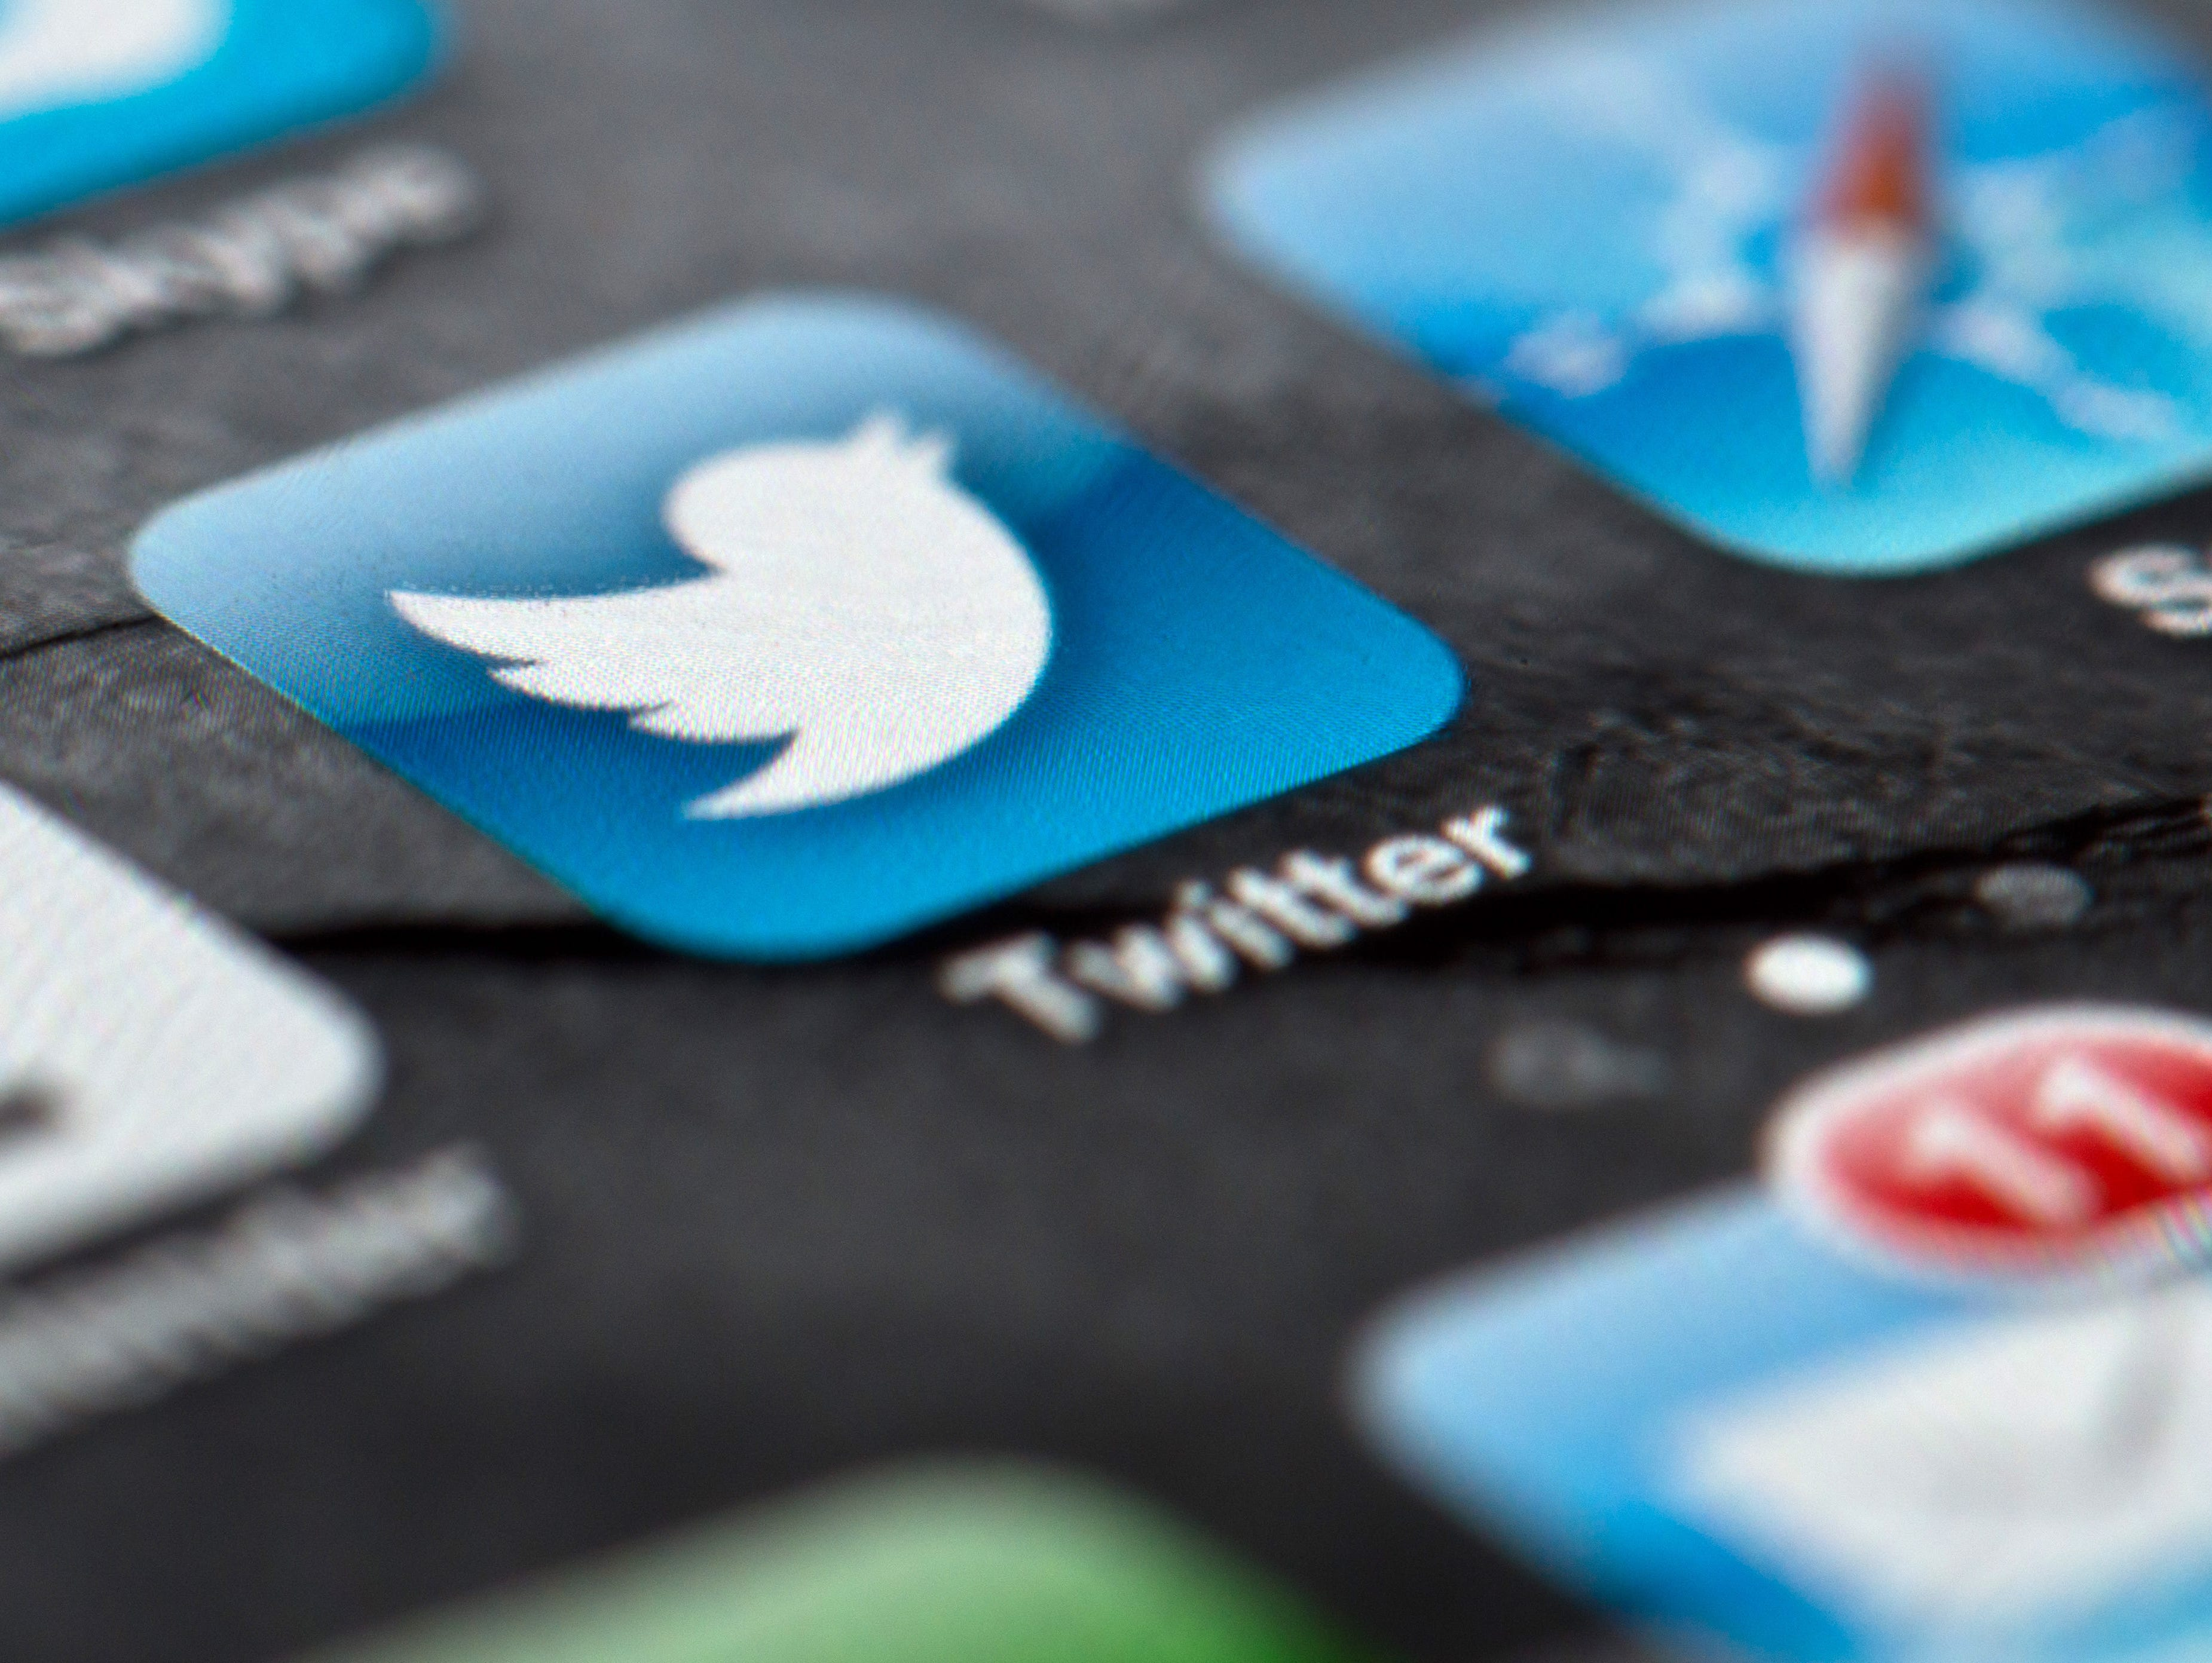 Twitter invests in Media partnerships in Asia Pacific, Middle East.